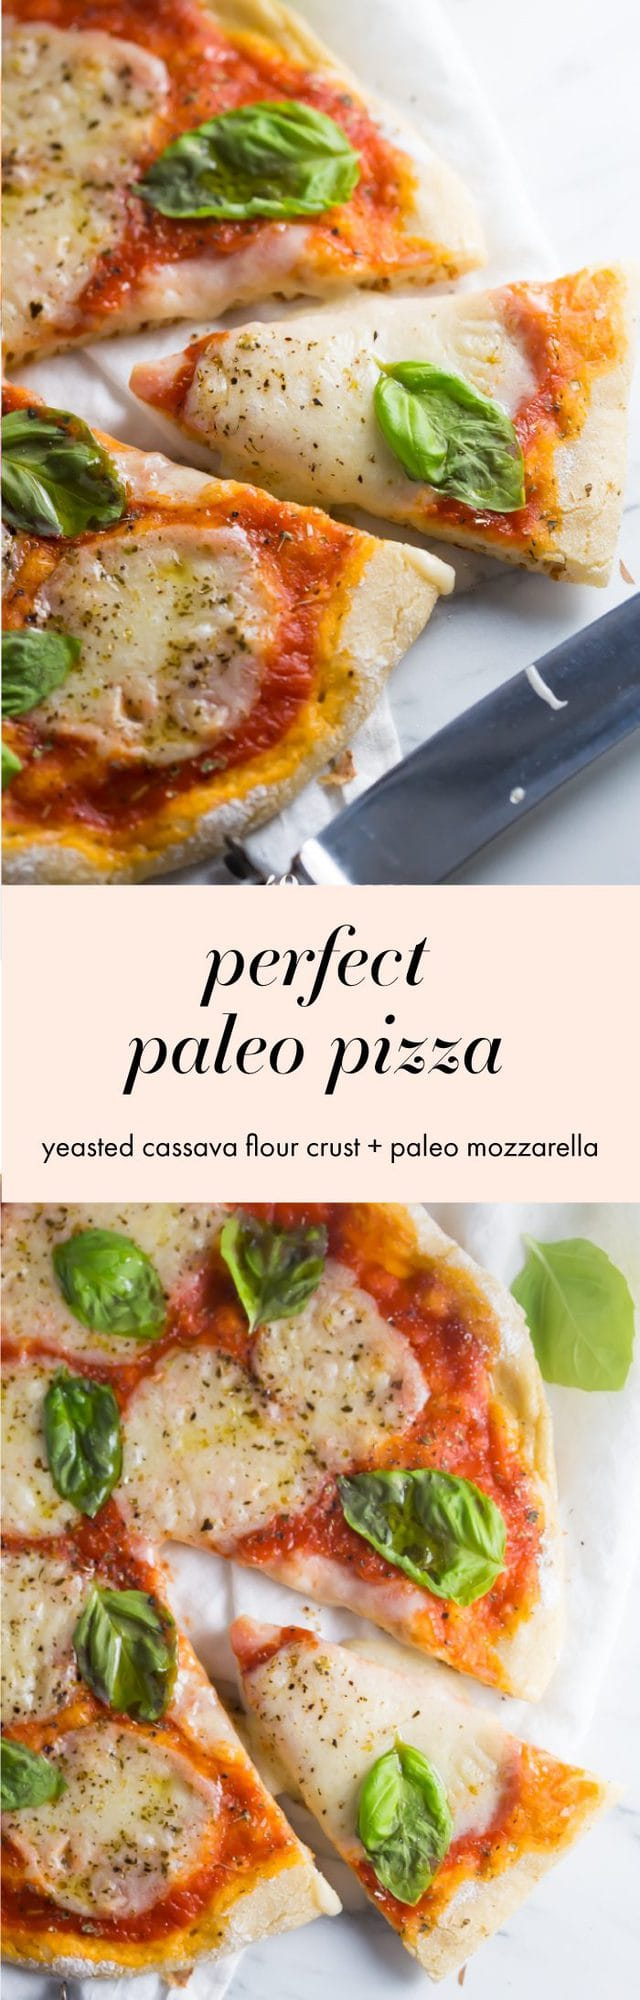 This perfect paleo pizza recipe is exactly that: the perfect paleo pizza recipe! Made with a yeasted cassava flour pizza crust, it's tender but crisp on the outside, layered with a paleo fresh mozzarella